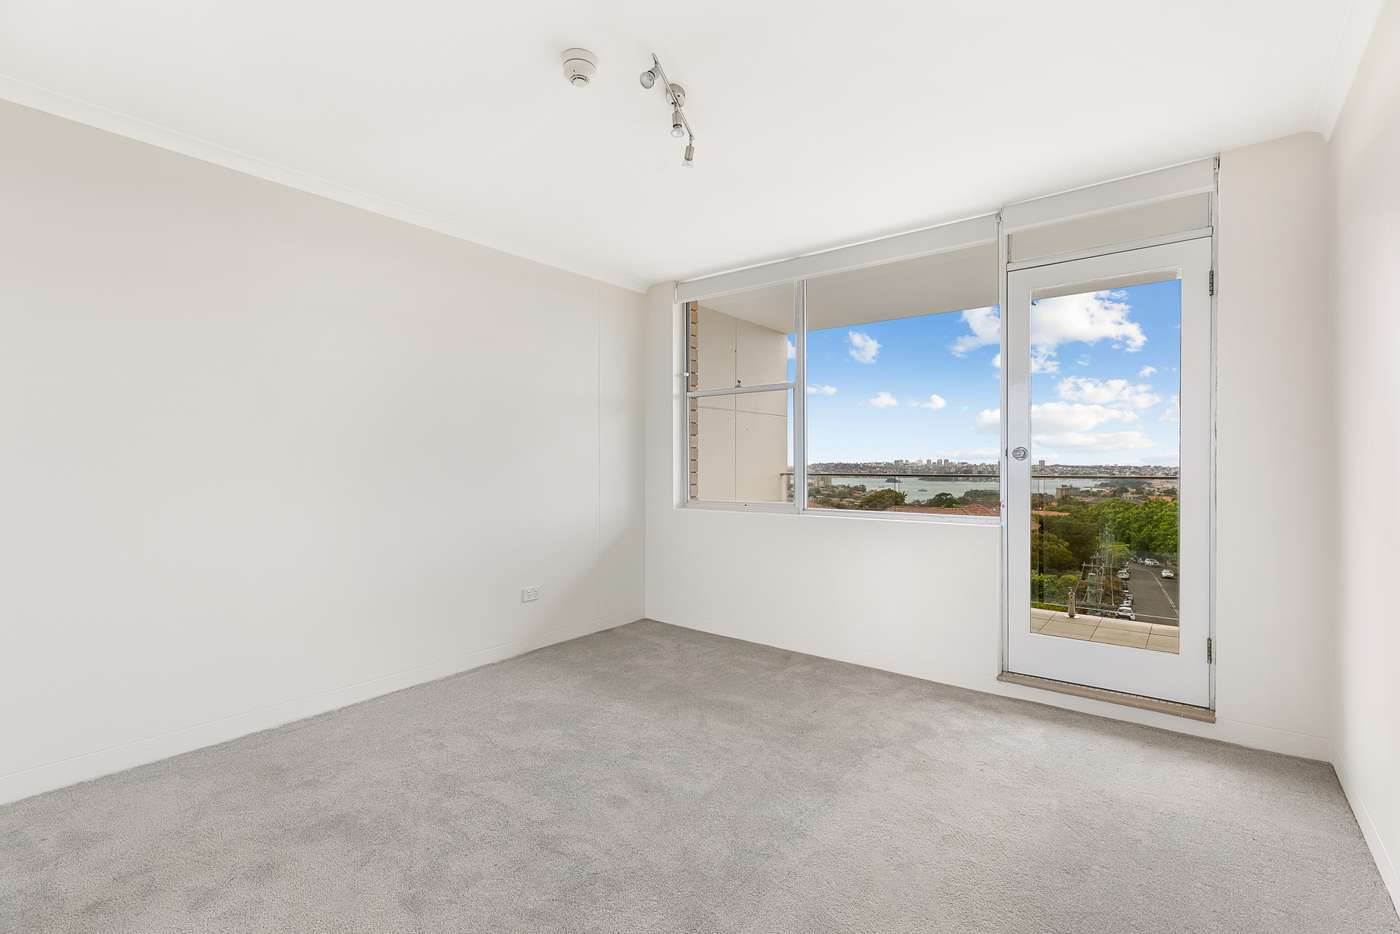 Sixth view of Homely apartment listing, 14/18 Cranbrook Avenue, Cremorne NSW 2090